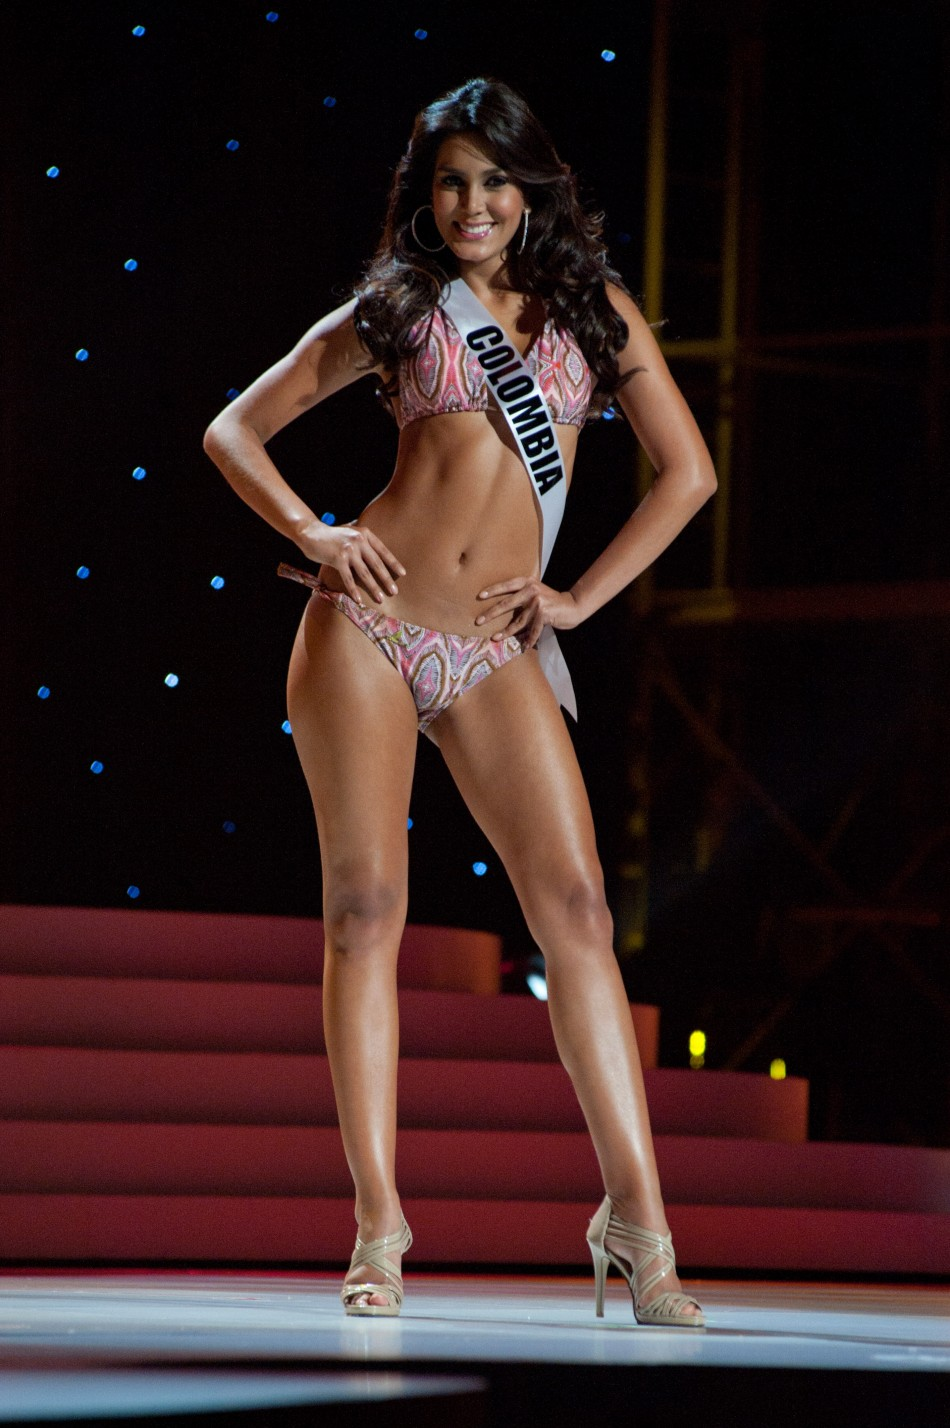 Bikini Photos: Miss Universe 2011, world beauties in sizzling hot swimwear.